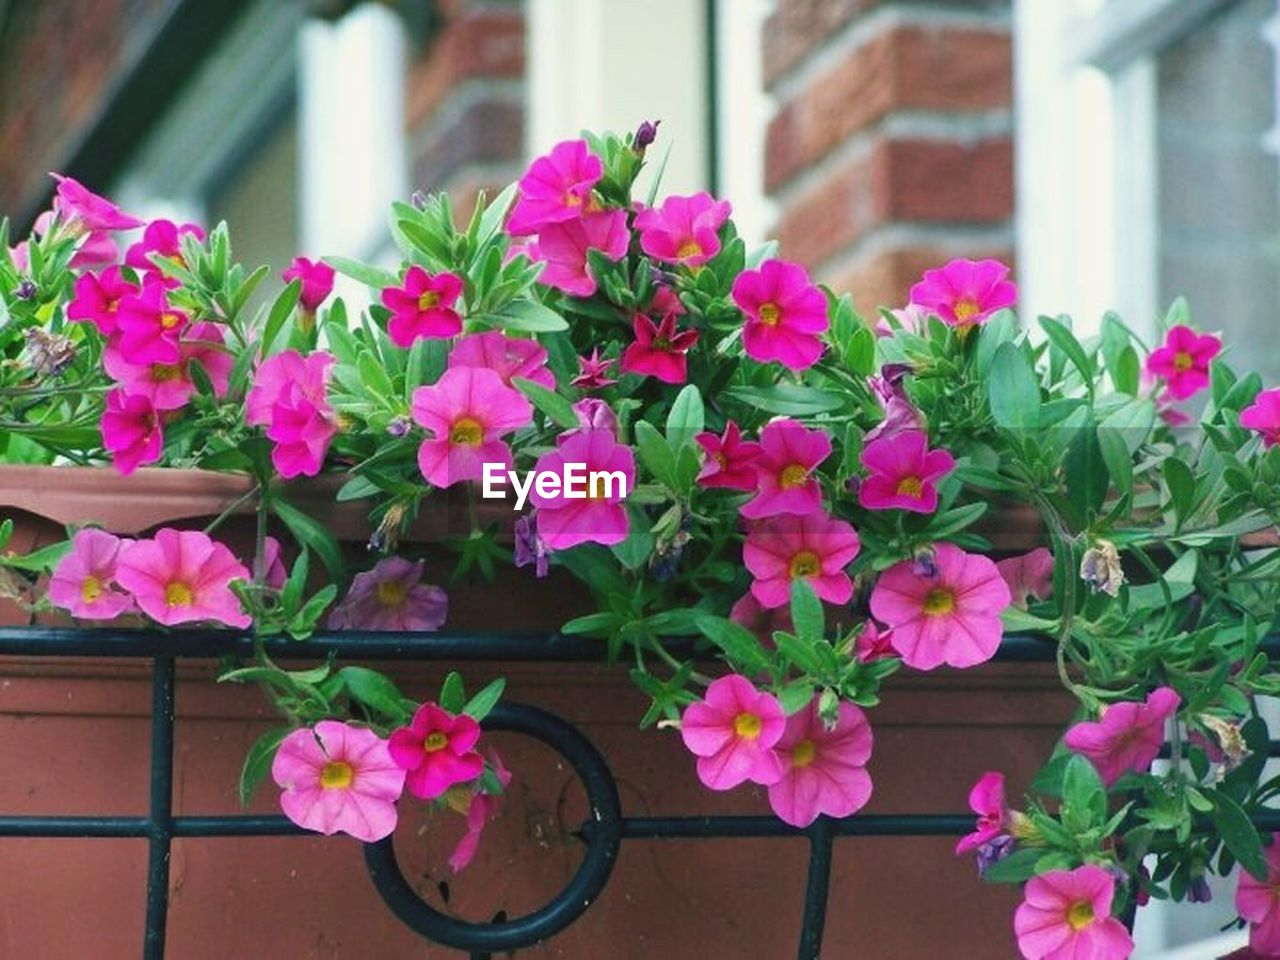 flower, pink color, plant, fragility, growth, petal, freshness, blooming, leaf, beauty in nature, nature, potted plant, no people, flower head, day, outdoors, building exterior, architecture, close-up, petunia, window box, periwinkle